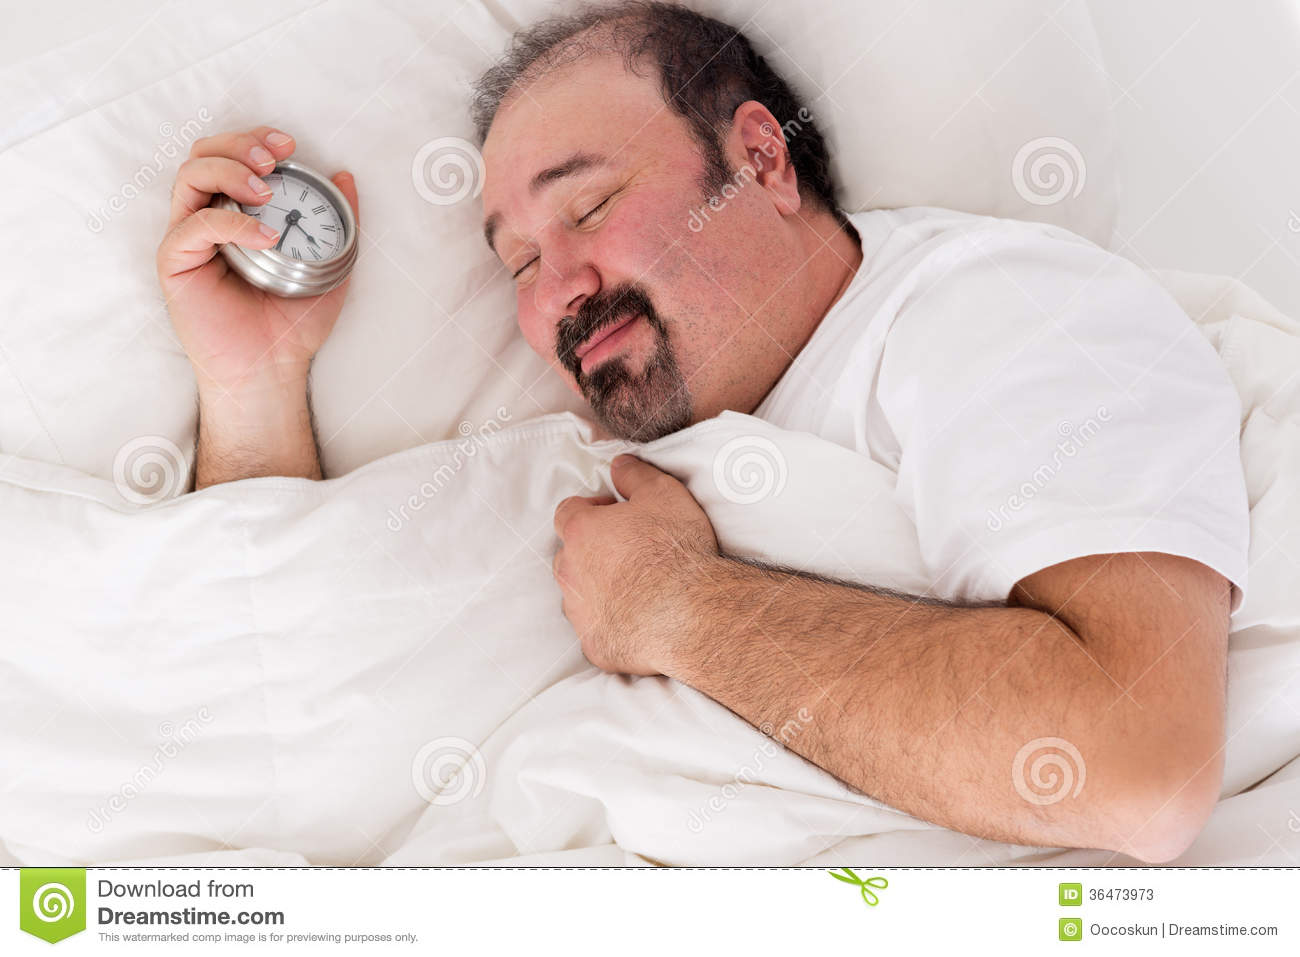 obesity map with Stock Photos Man Smiling Contentment Good Sleep Lying Bed Nights Feeling Relaxed Refreshed As Struggles To Wake Up Image36473973 on Top 10 Nations Whose People Live Longest also Selectdhb moreover Seepro english moreover Review Elliott Walle besides 15244459091.